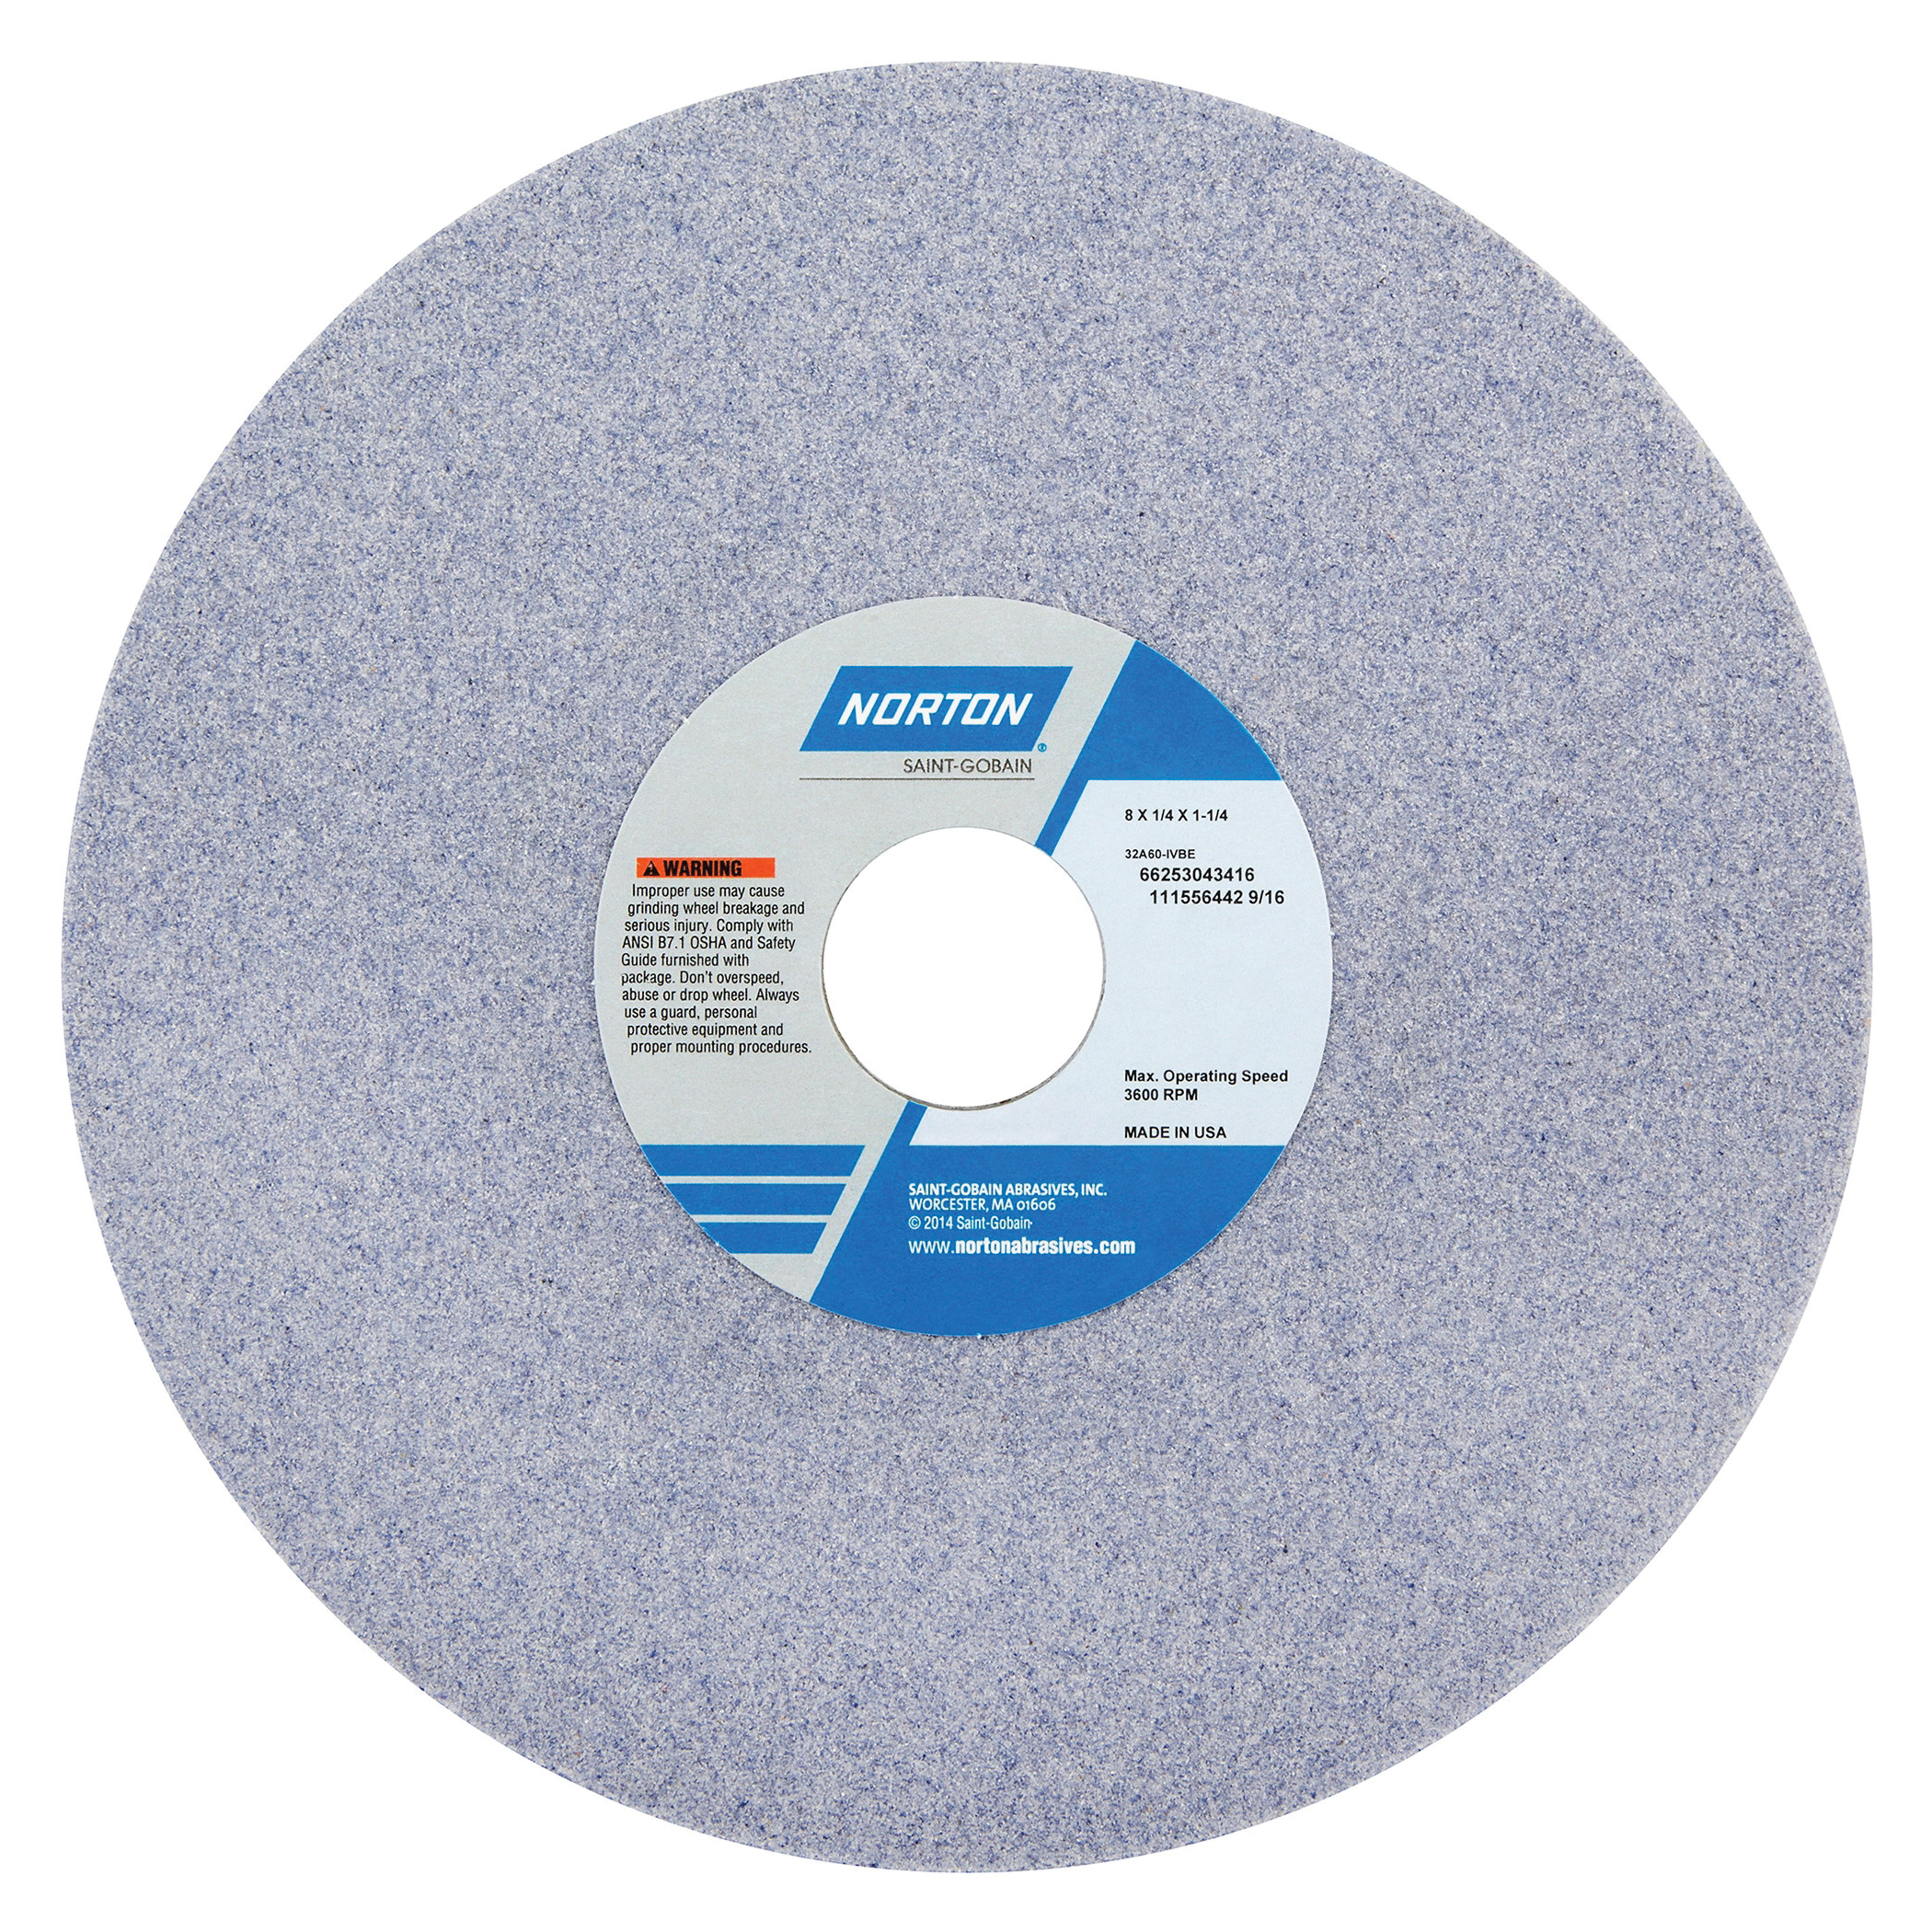 Norton® 66253043417 32A Straight Toolroom Wheel, 8 in Dia x 1/4 in THK, 1-1/4 in Center Hole, 60 Grit, Aluminum Oxide Abrasive